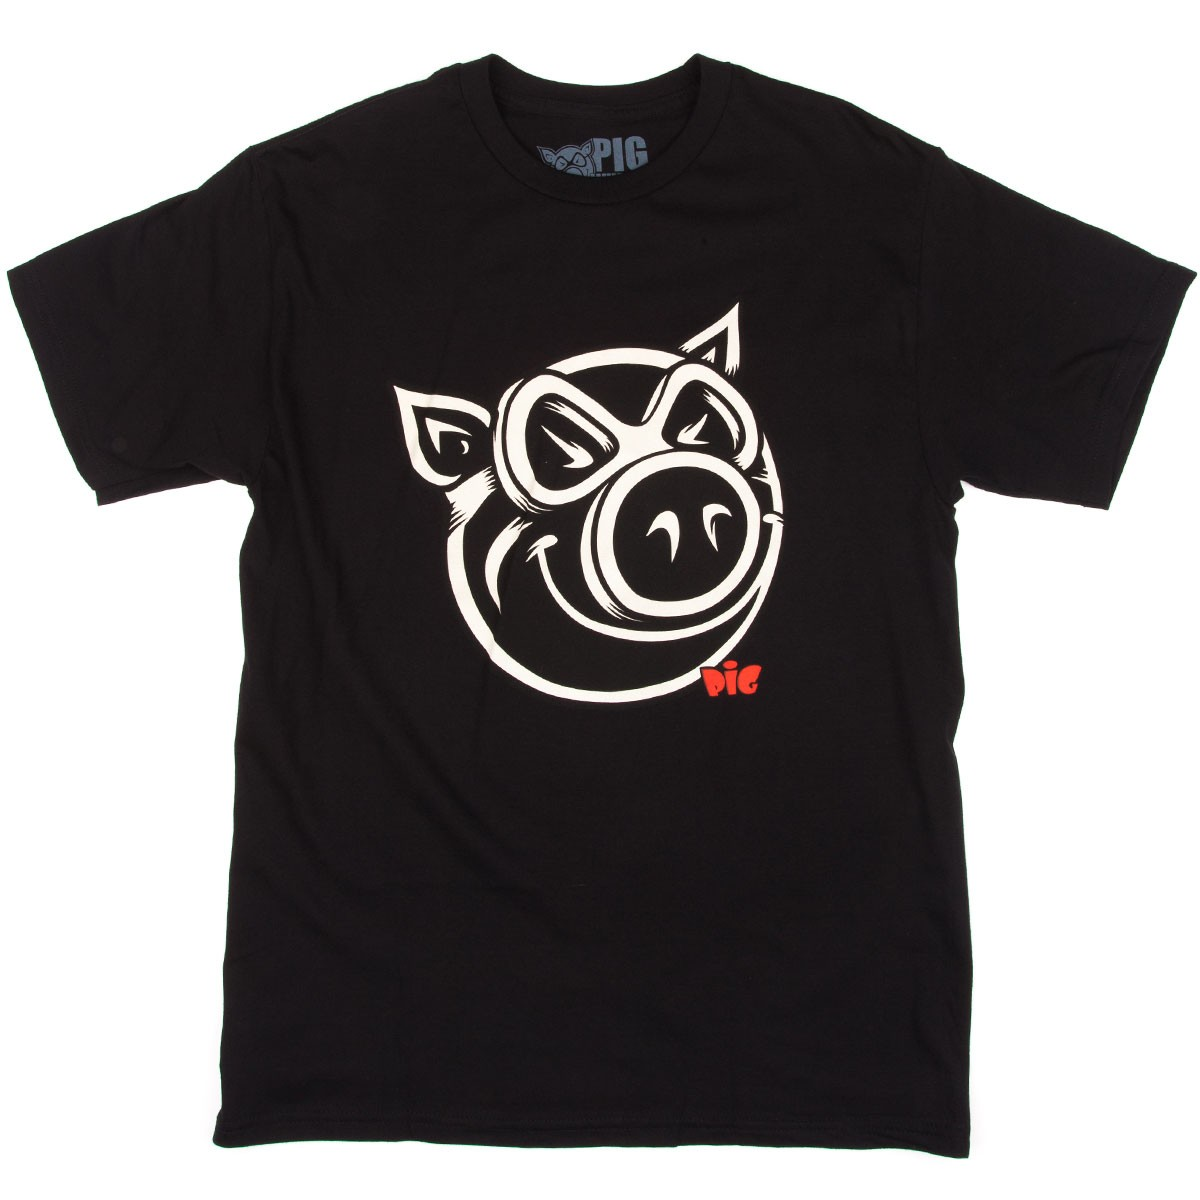 a241027f5601 pig-wheels-3d-pig-t-shirt-black-1.1506775600.jpg